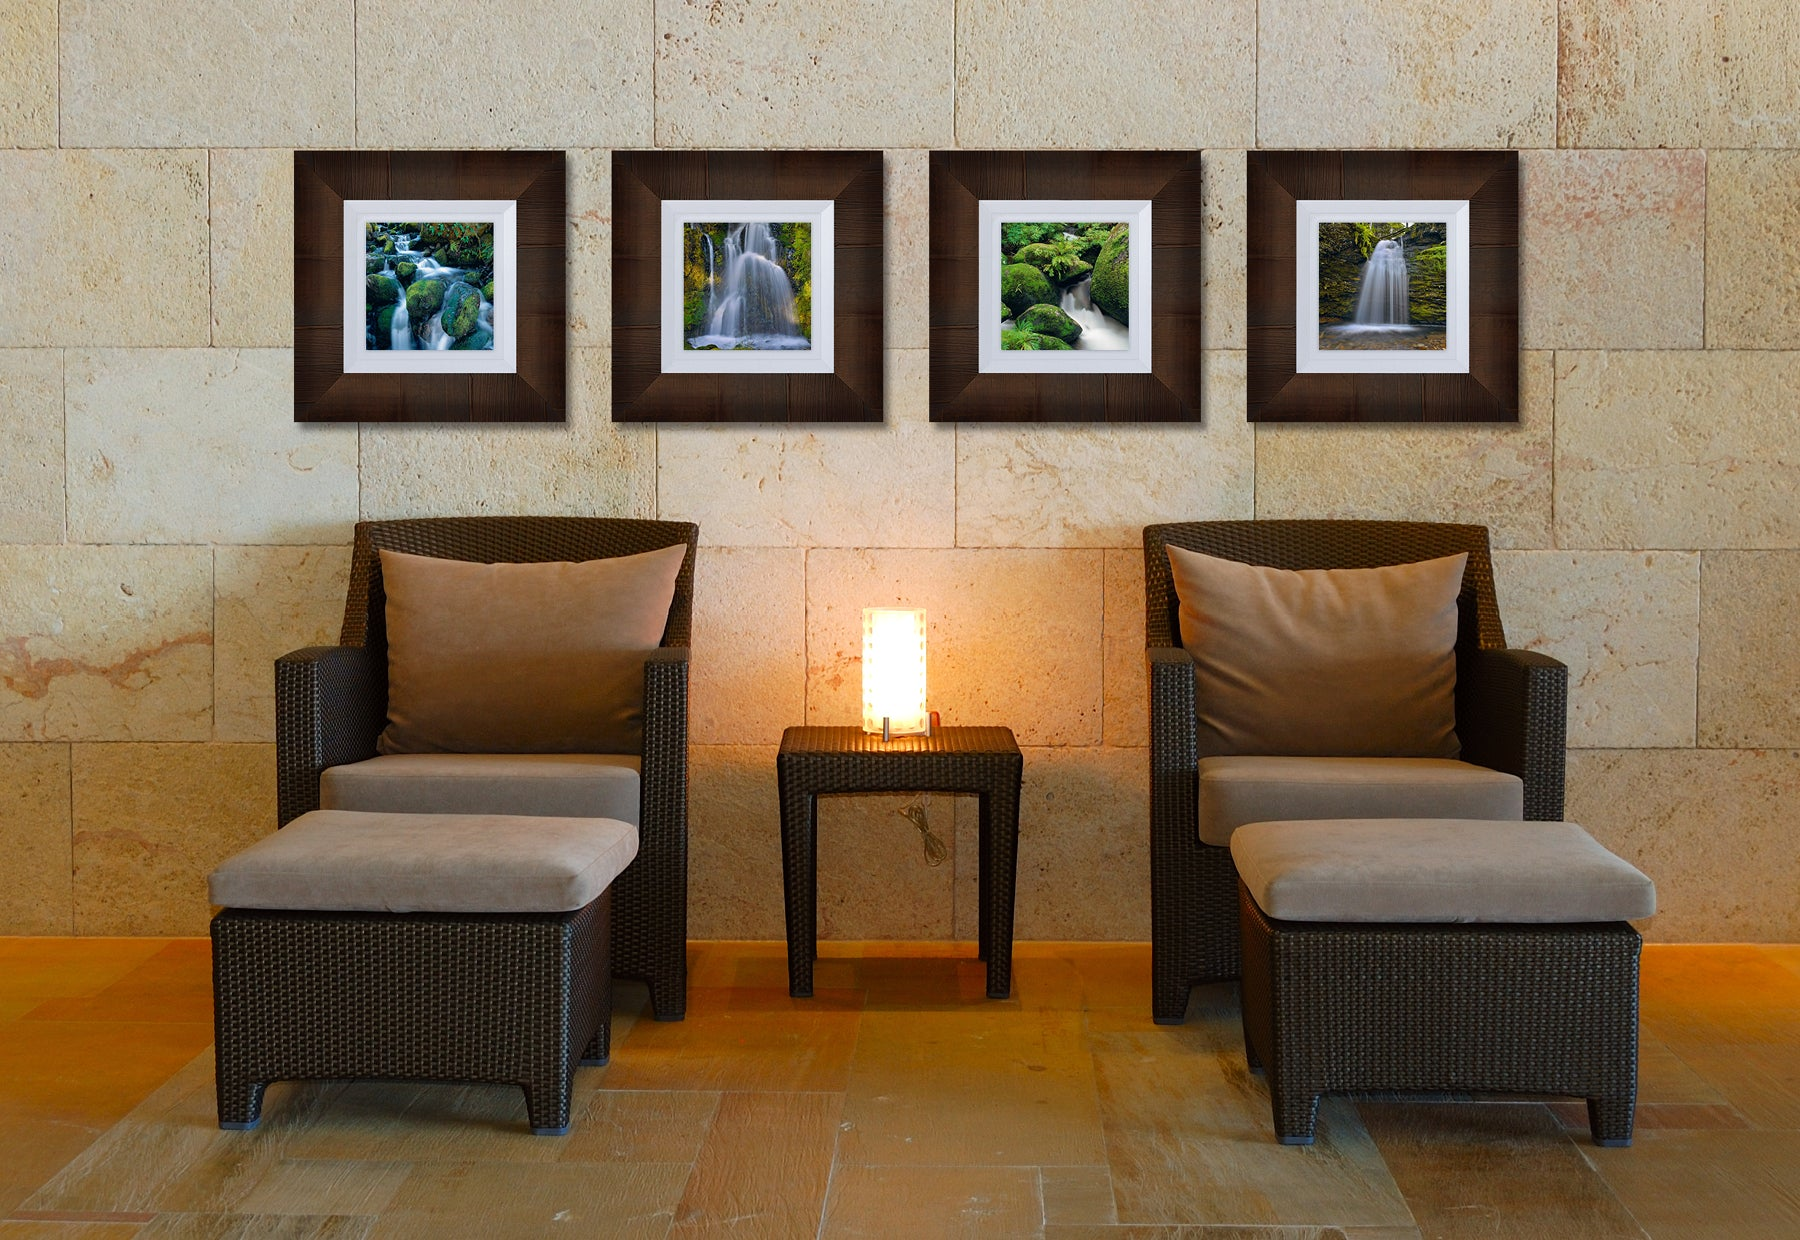 Spa waiting area with two chairs with ottomans featuring four square photographs of waterfalls by Peter Lik in brown frames with with liners